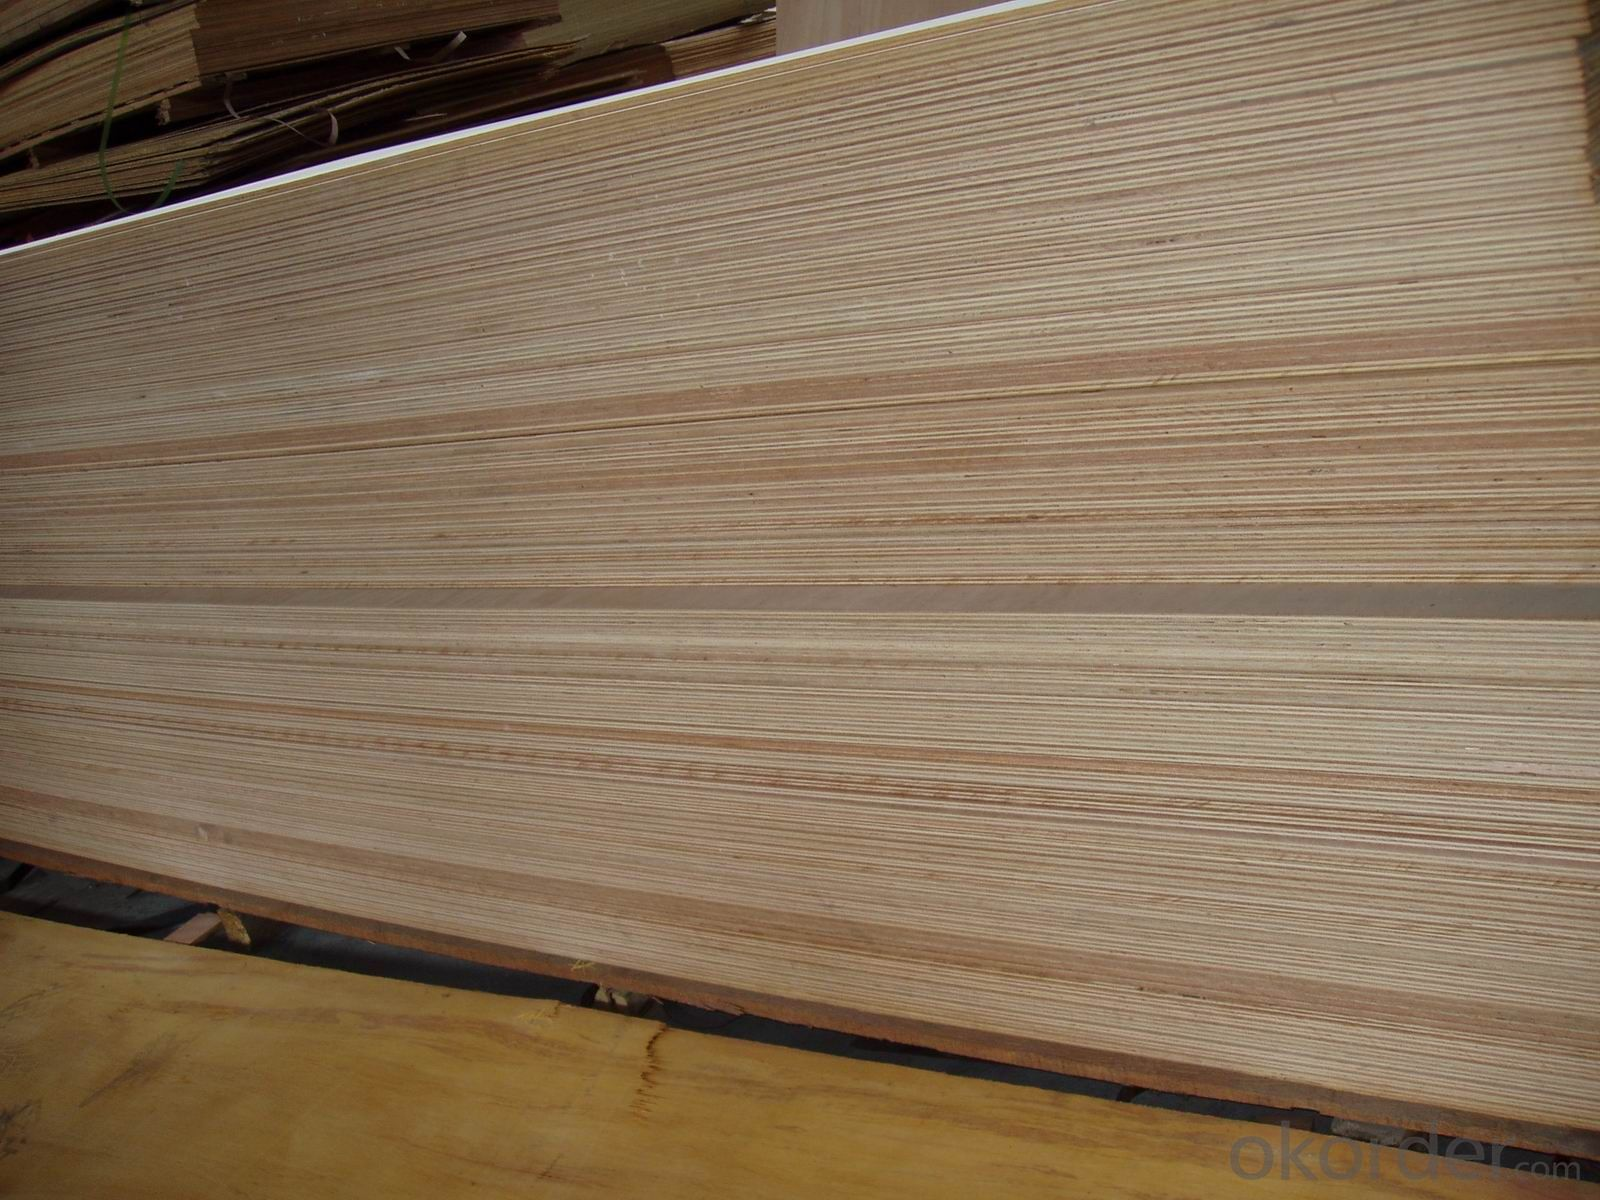 Buy wbp glue plywood door skin high quality furniture for Furniture quality plywood